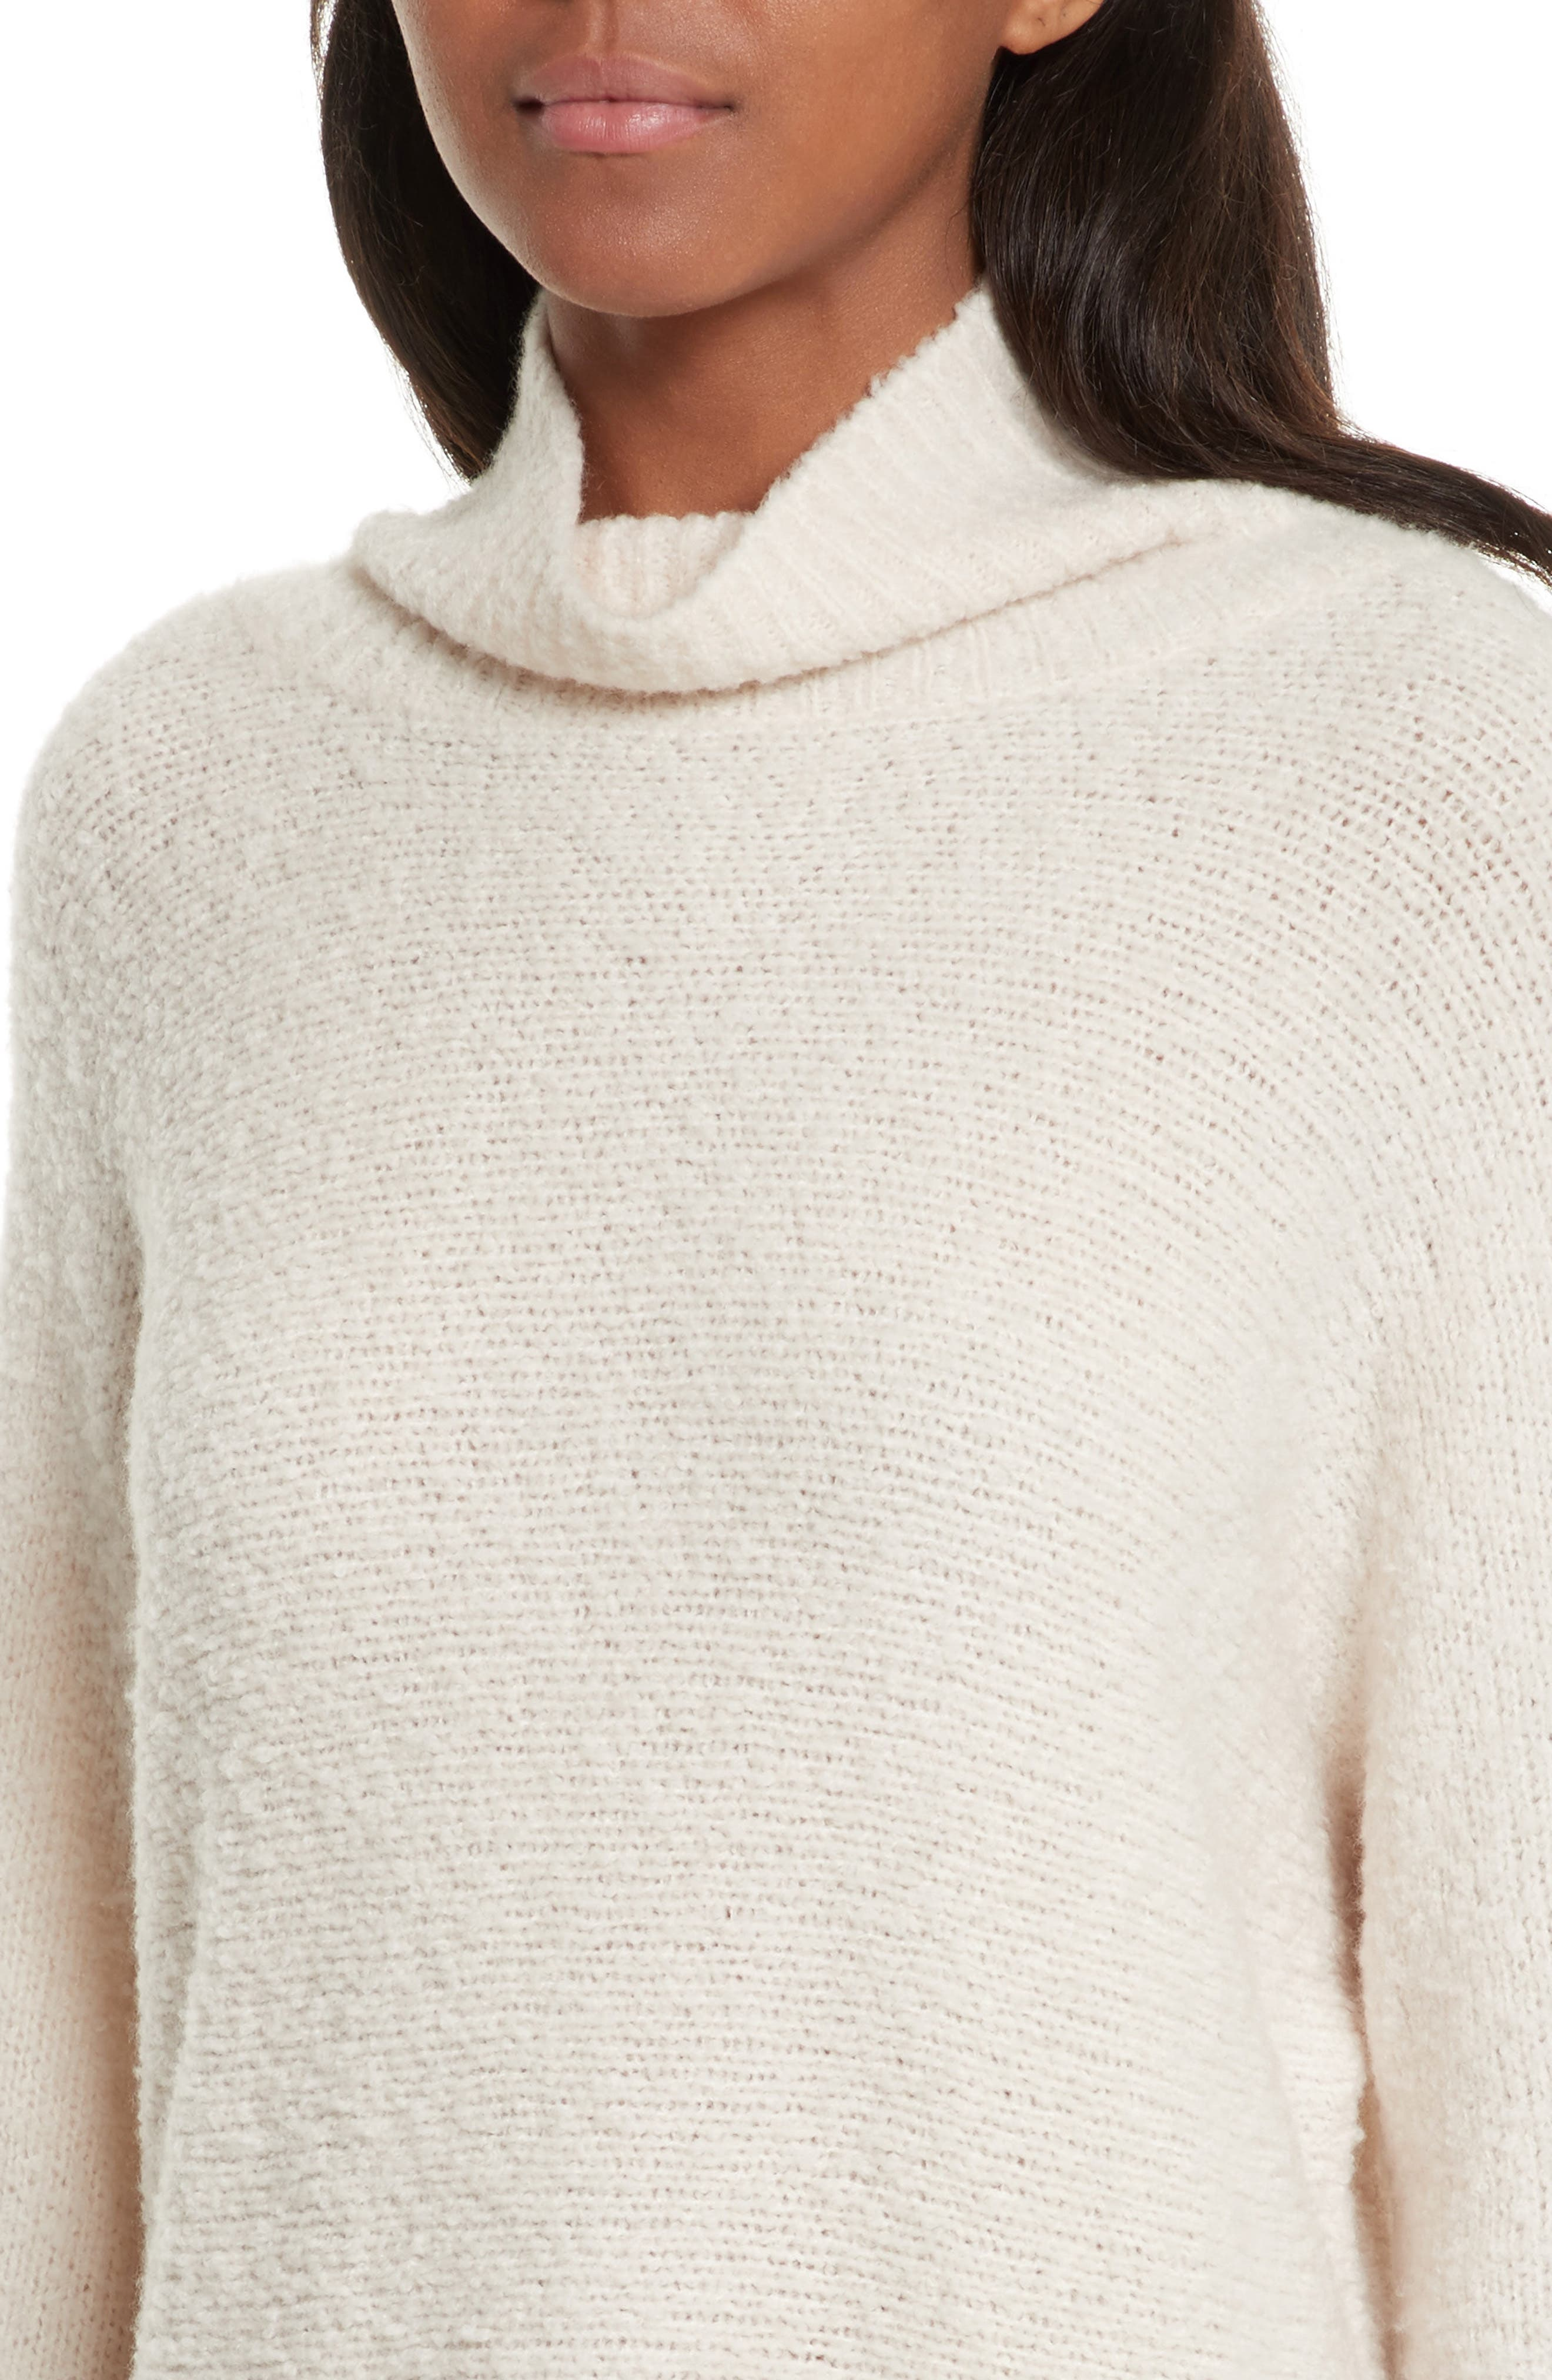 Lehi Wool & Cashmere Sweater,                             Alternate thumbnail 8, color,